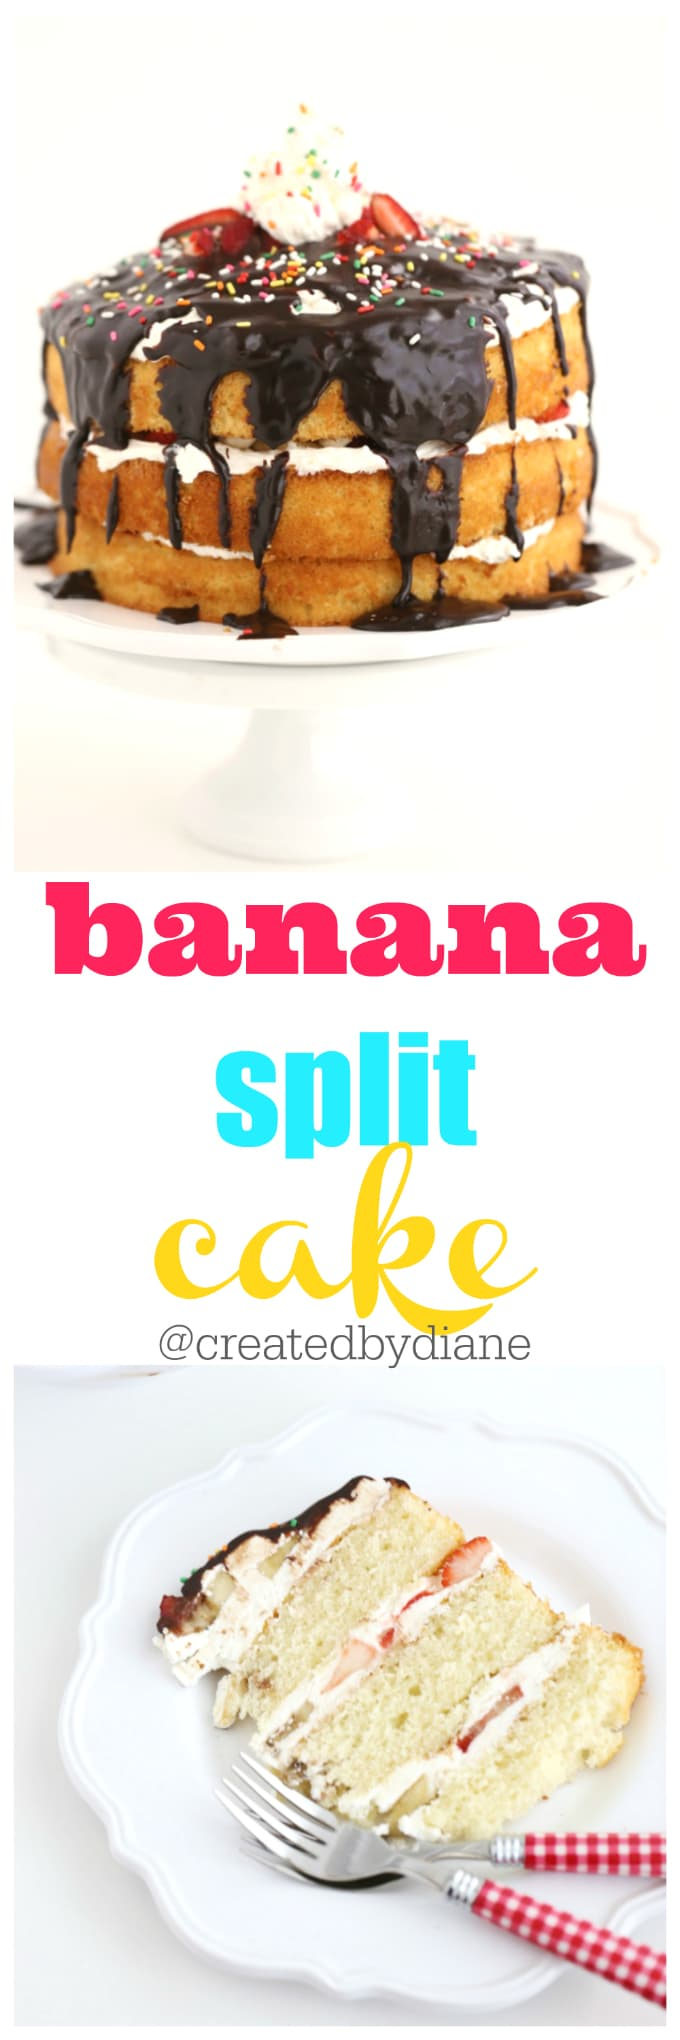 banana split cake recipe can be made in an HOUR!!! @createdbydiane